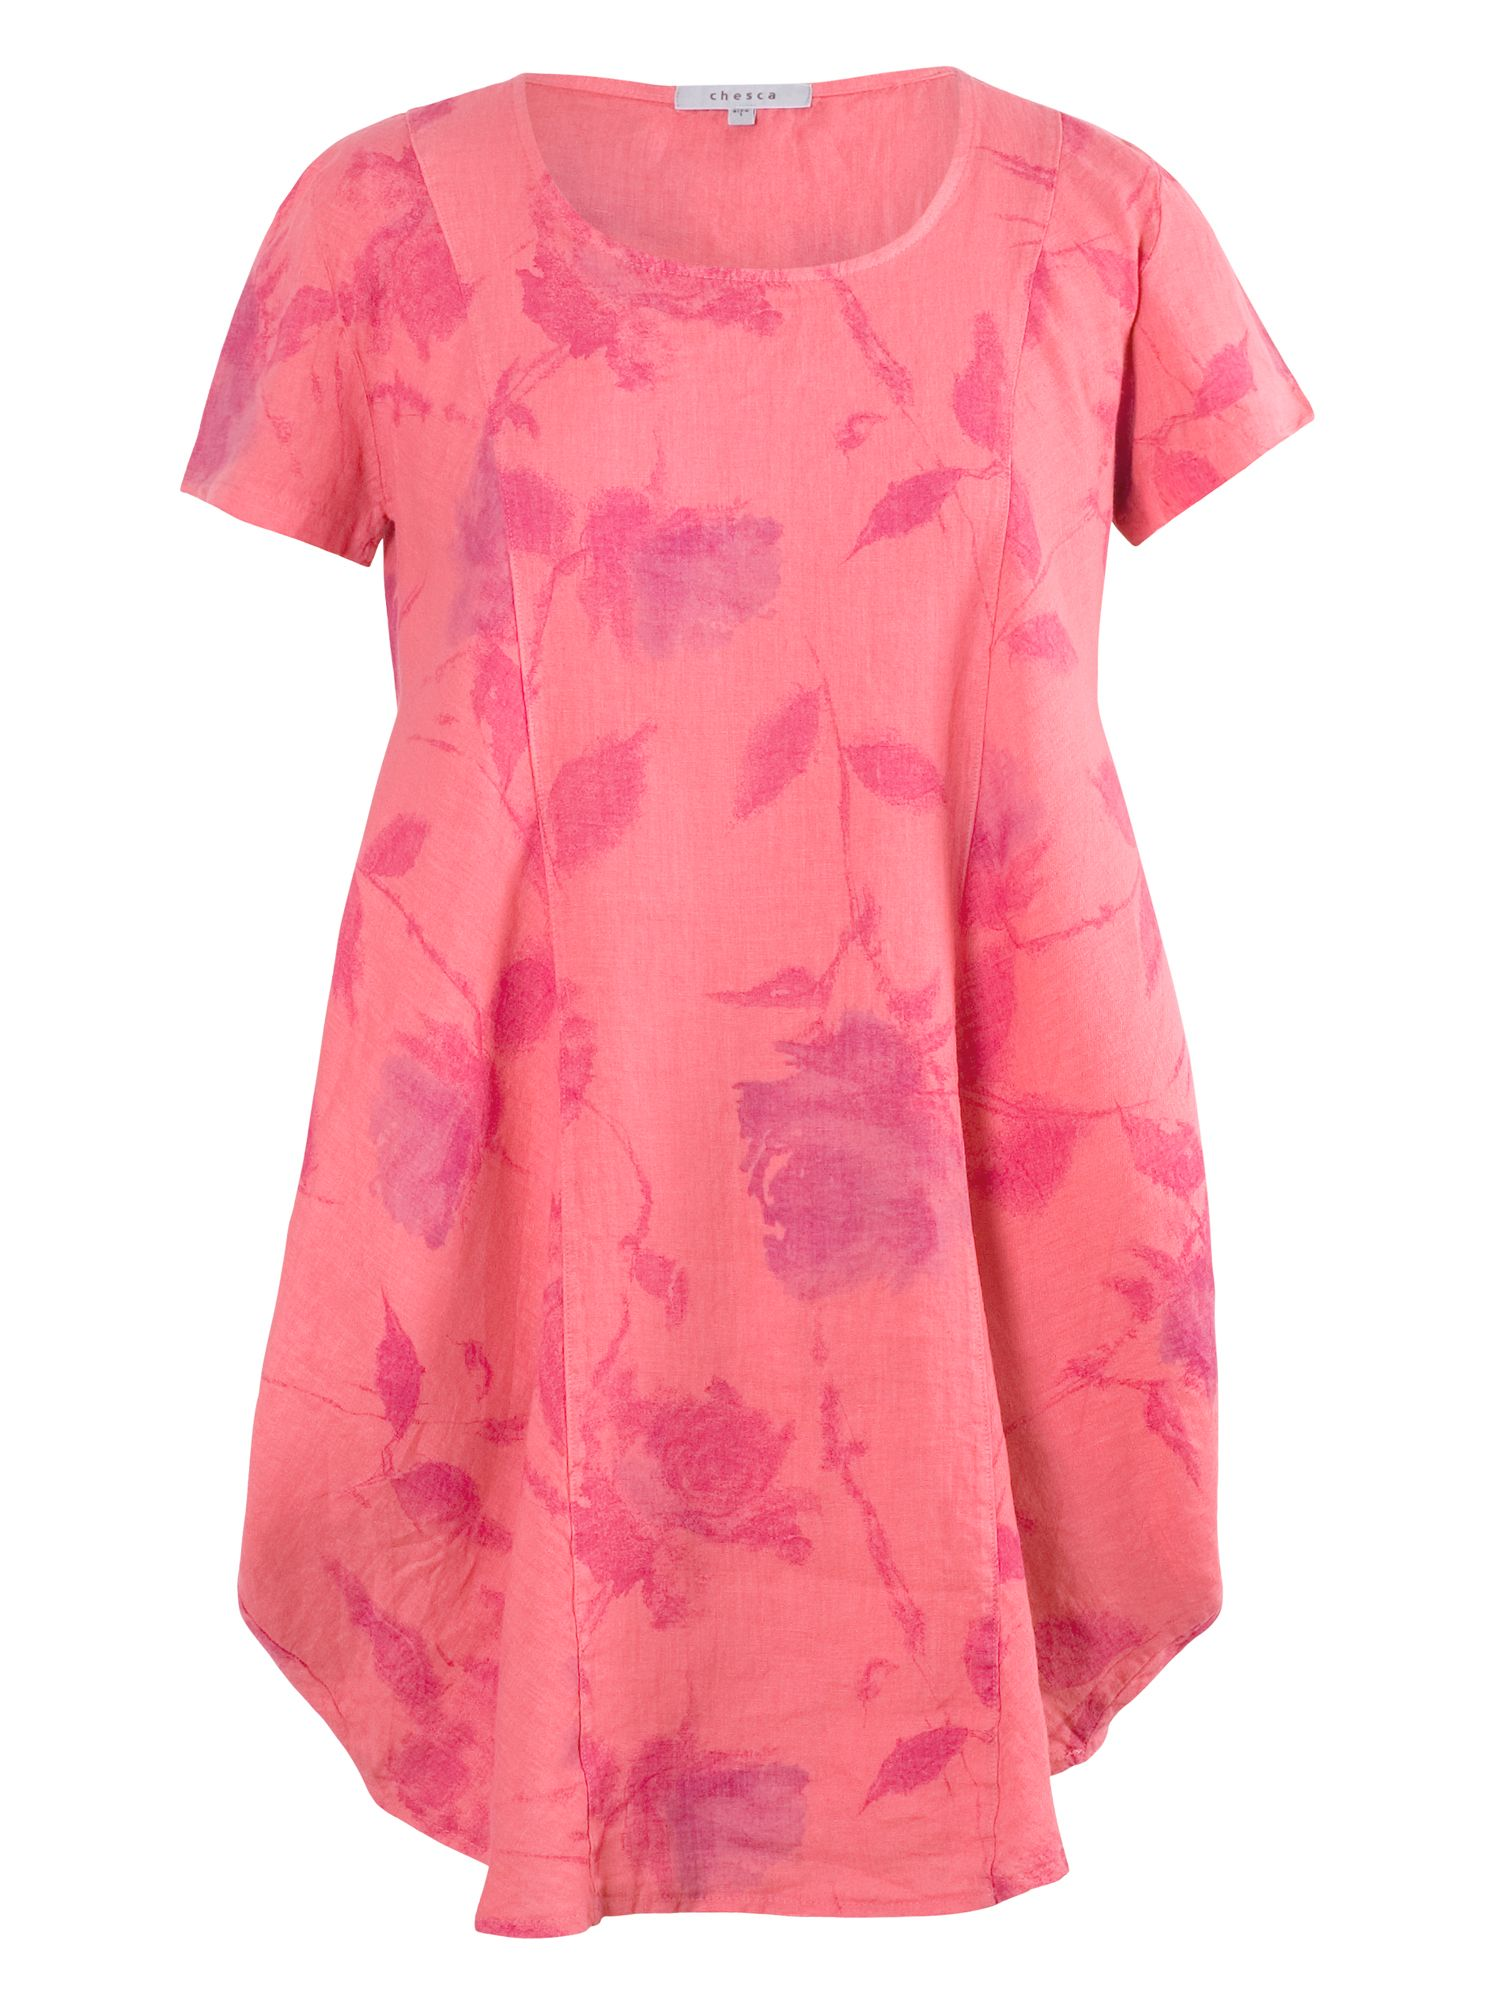 Chesca Floral Print Linen Tunic, Pink